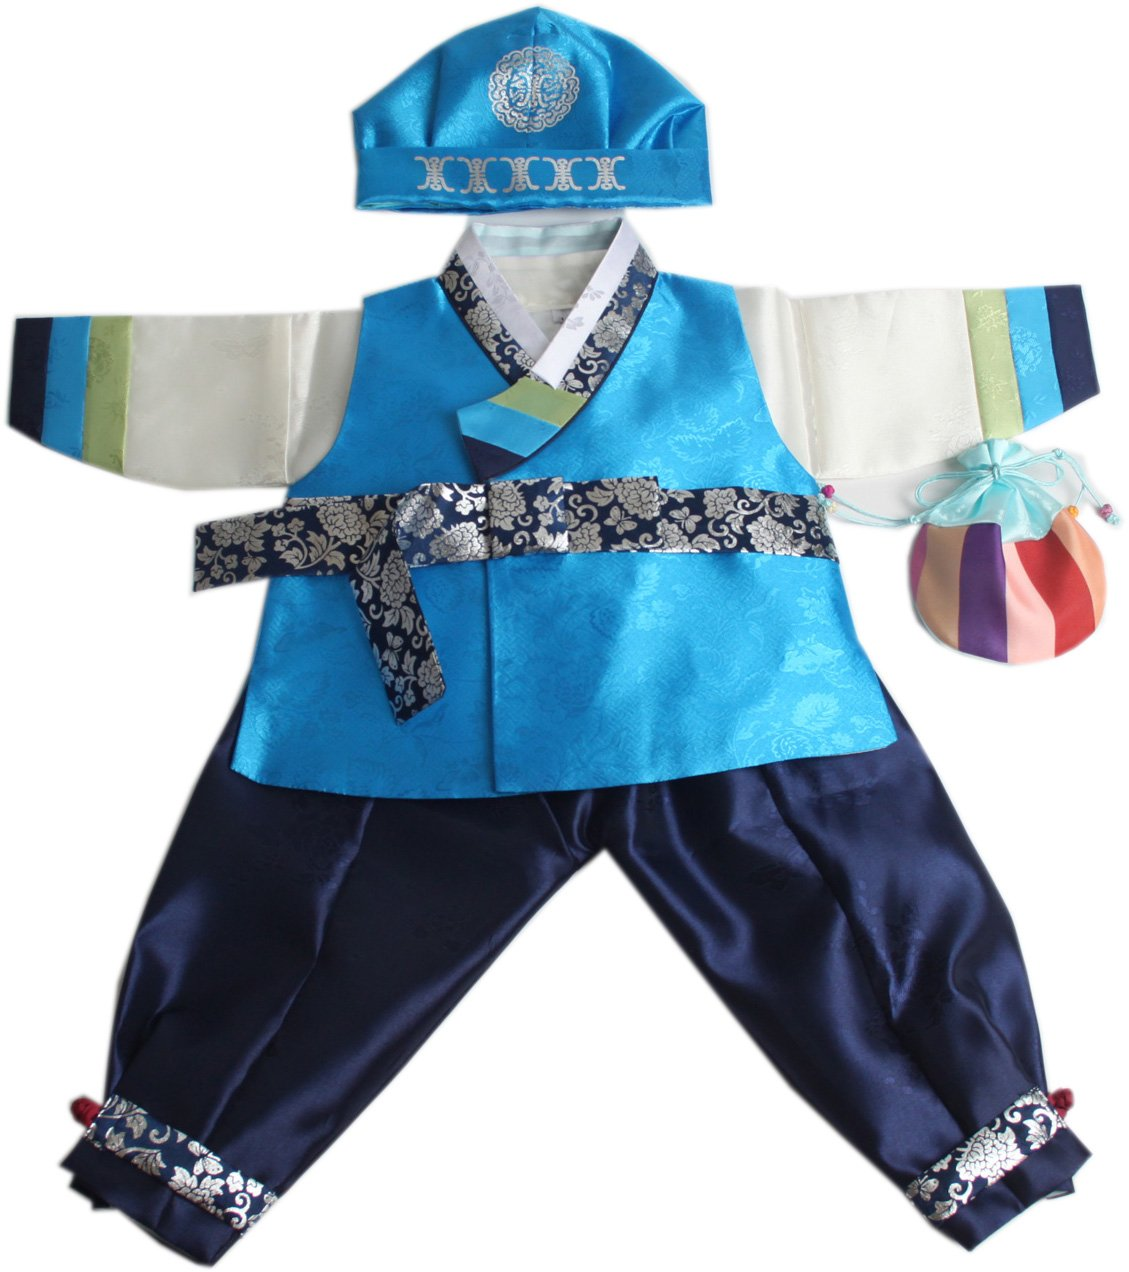 Korean hanbok boys babys 2ND BIRTHDAY traditional 2 AGES hb058